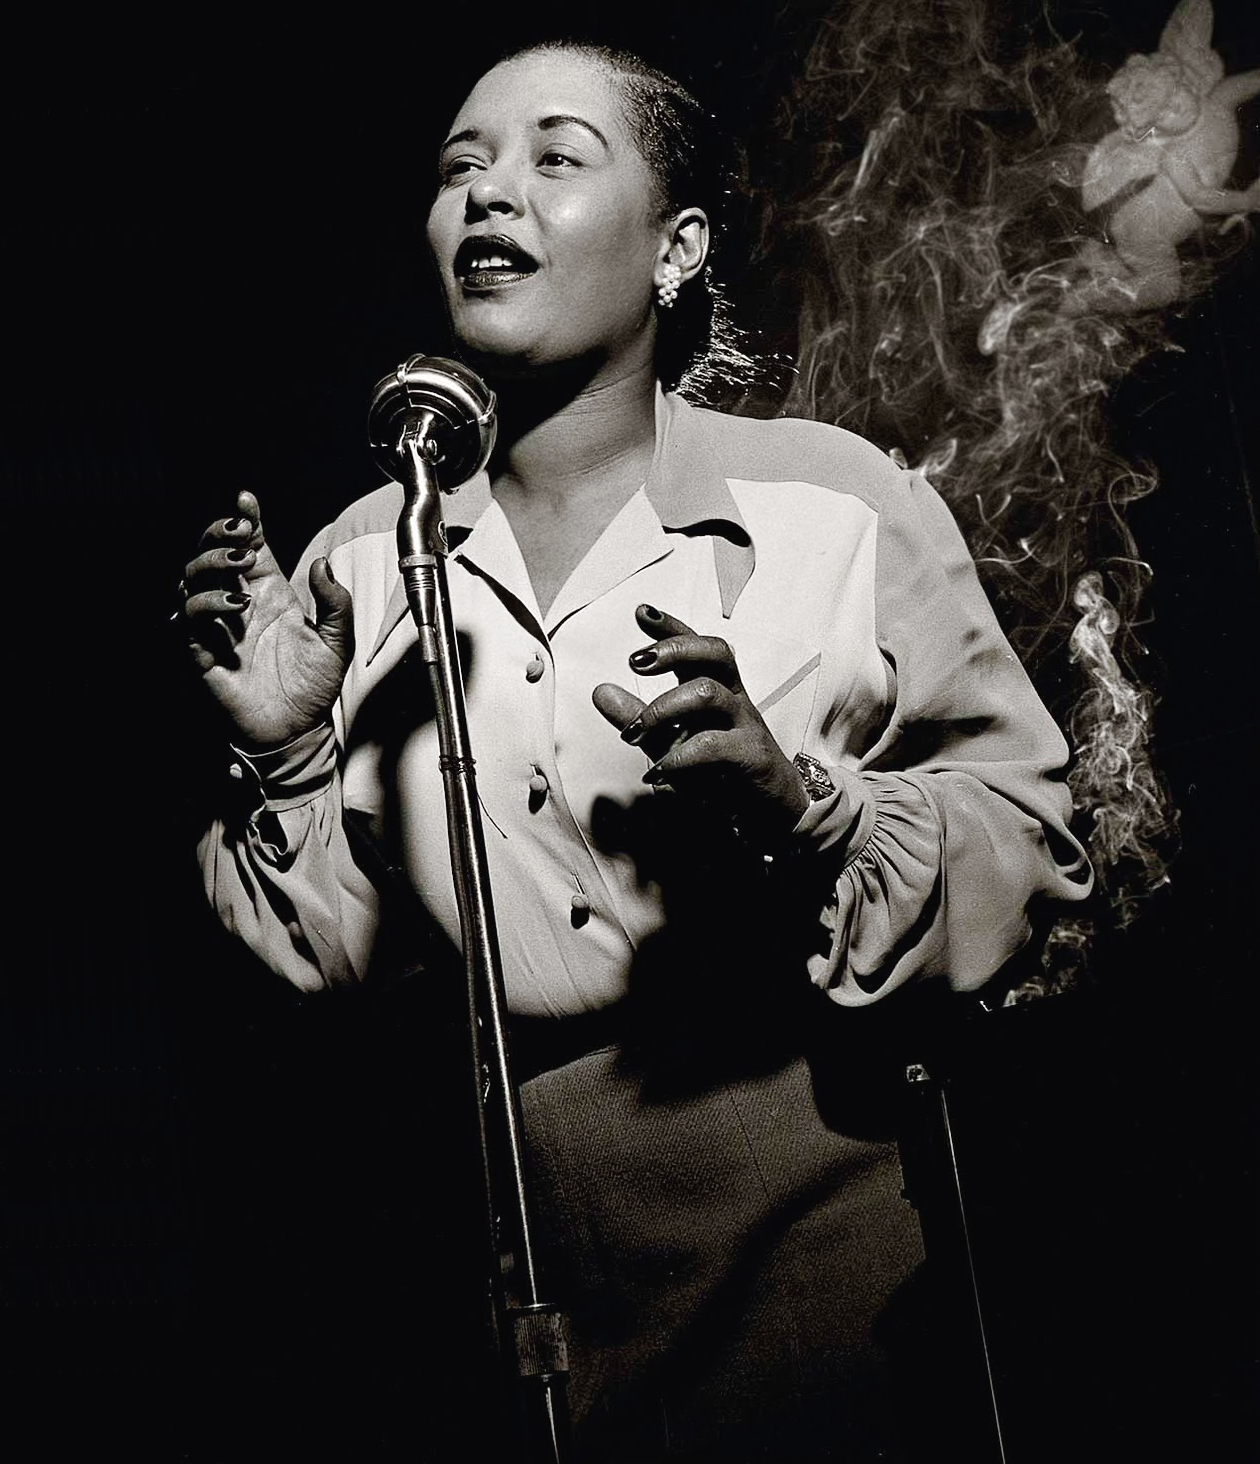 Billie Holiday The Lady Sings Vol 2